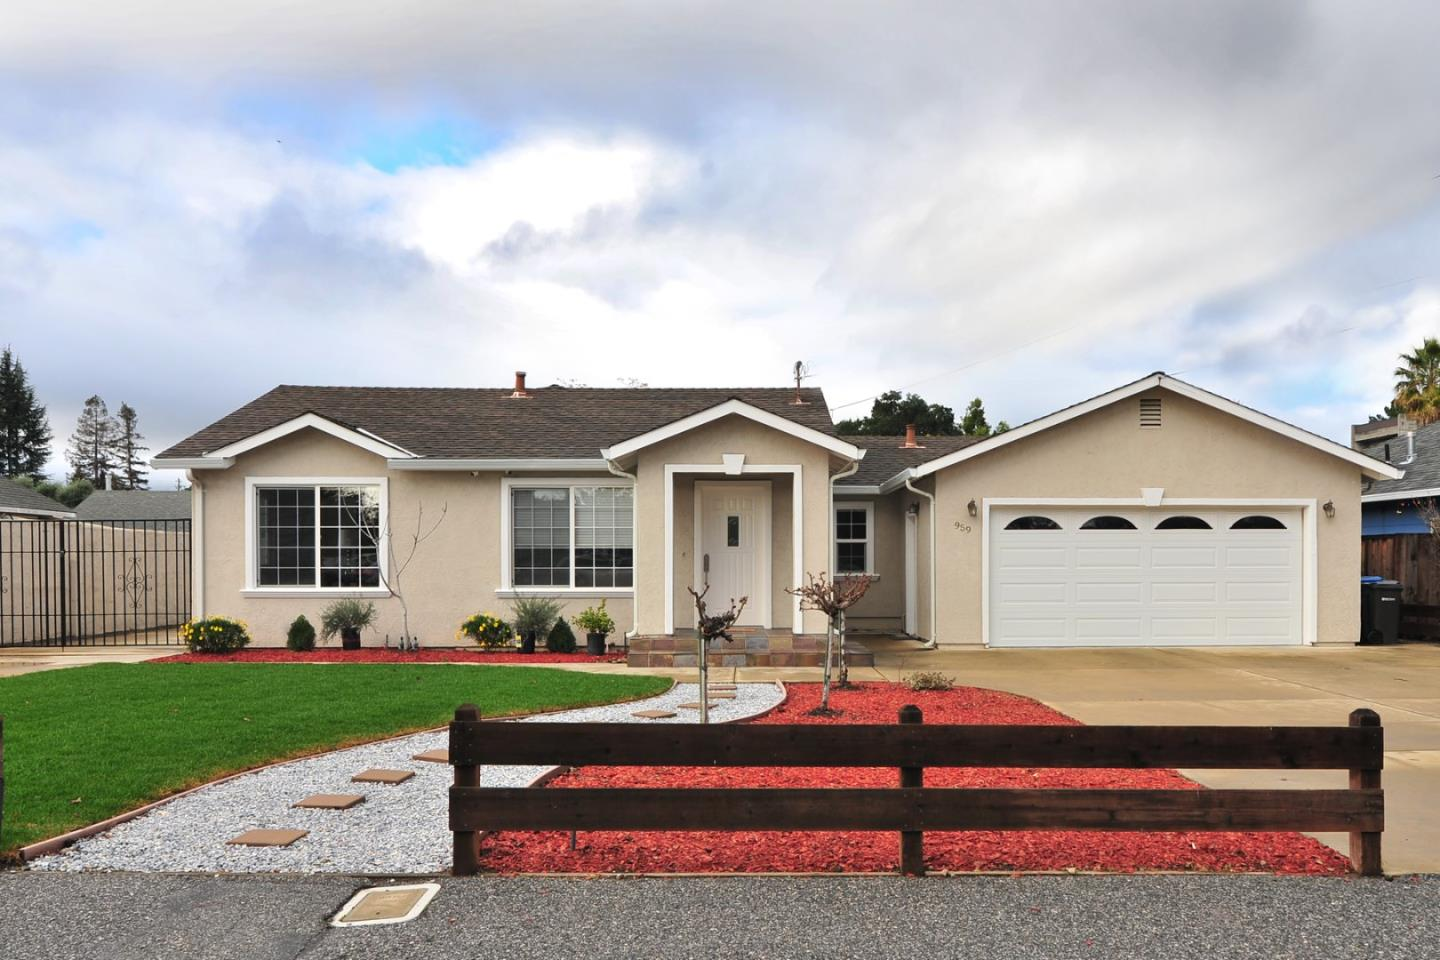 959 Emory Ave, Campbell, CA